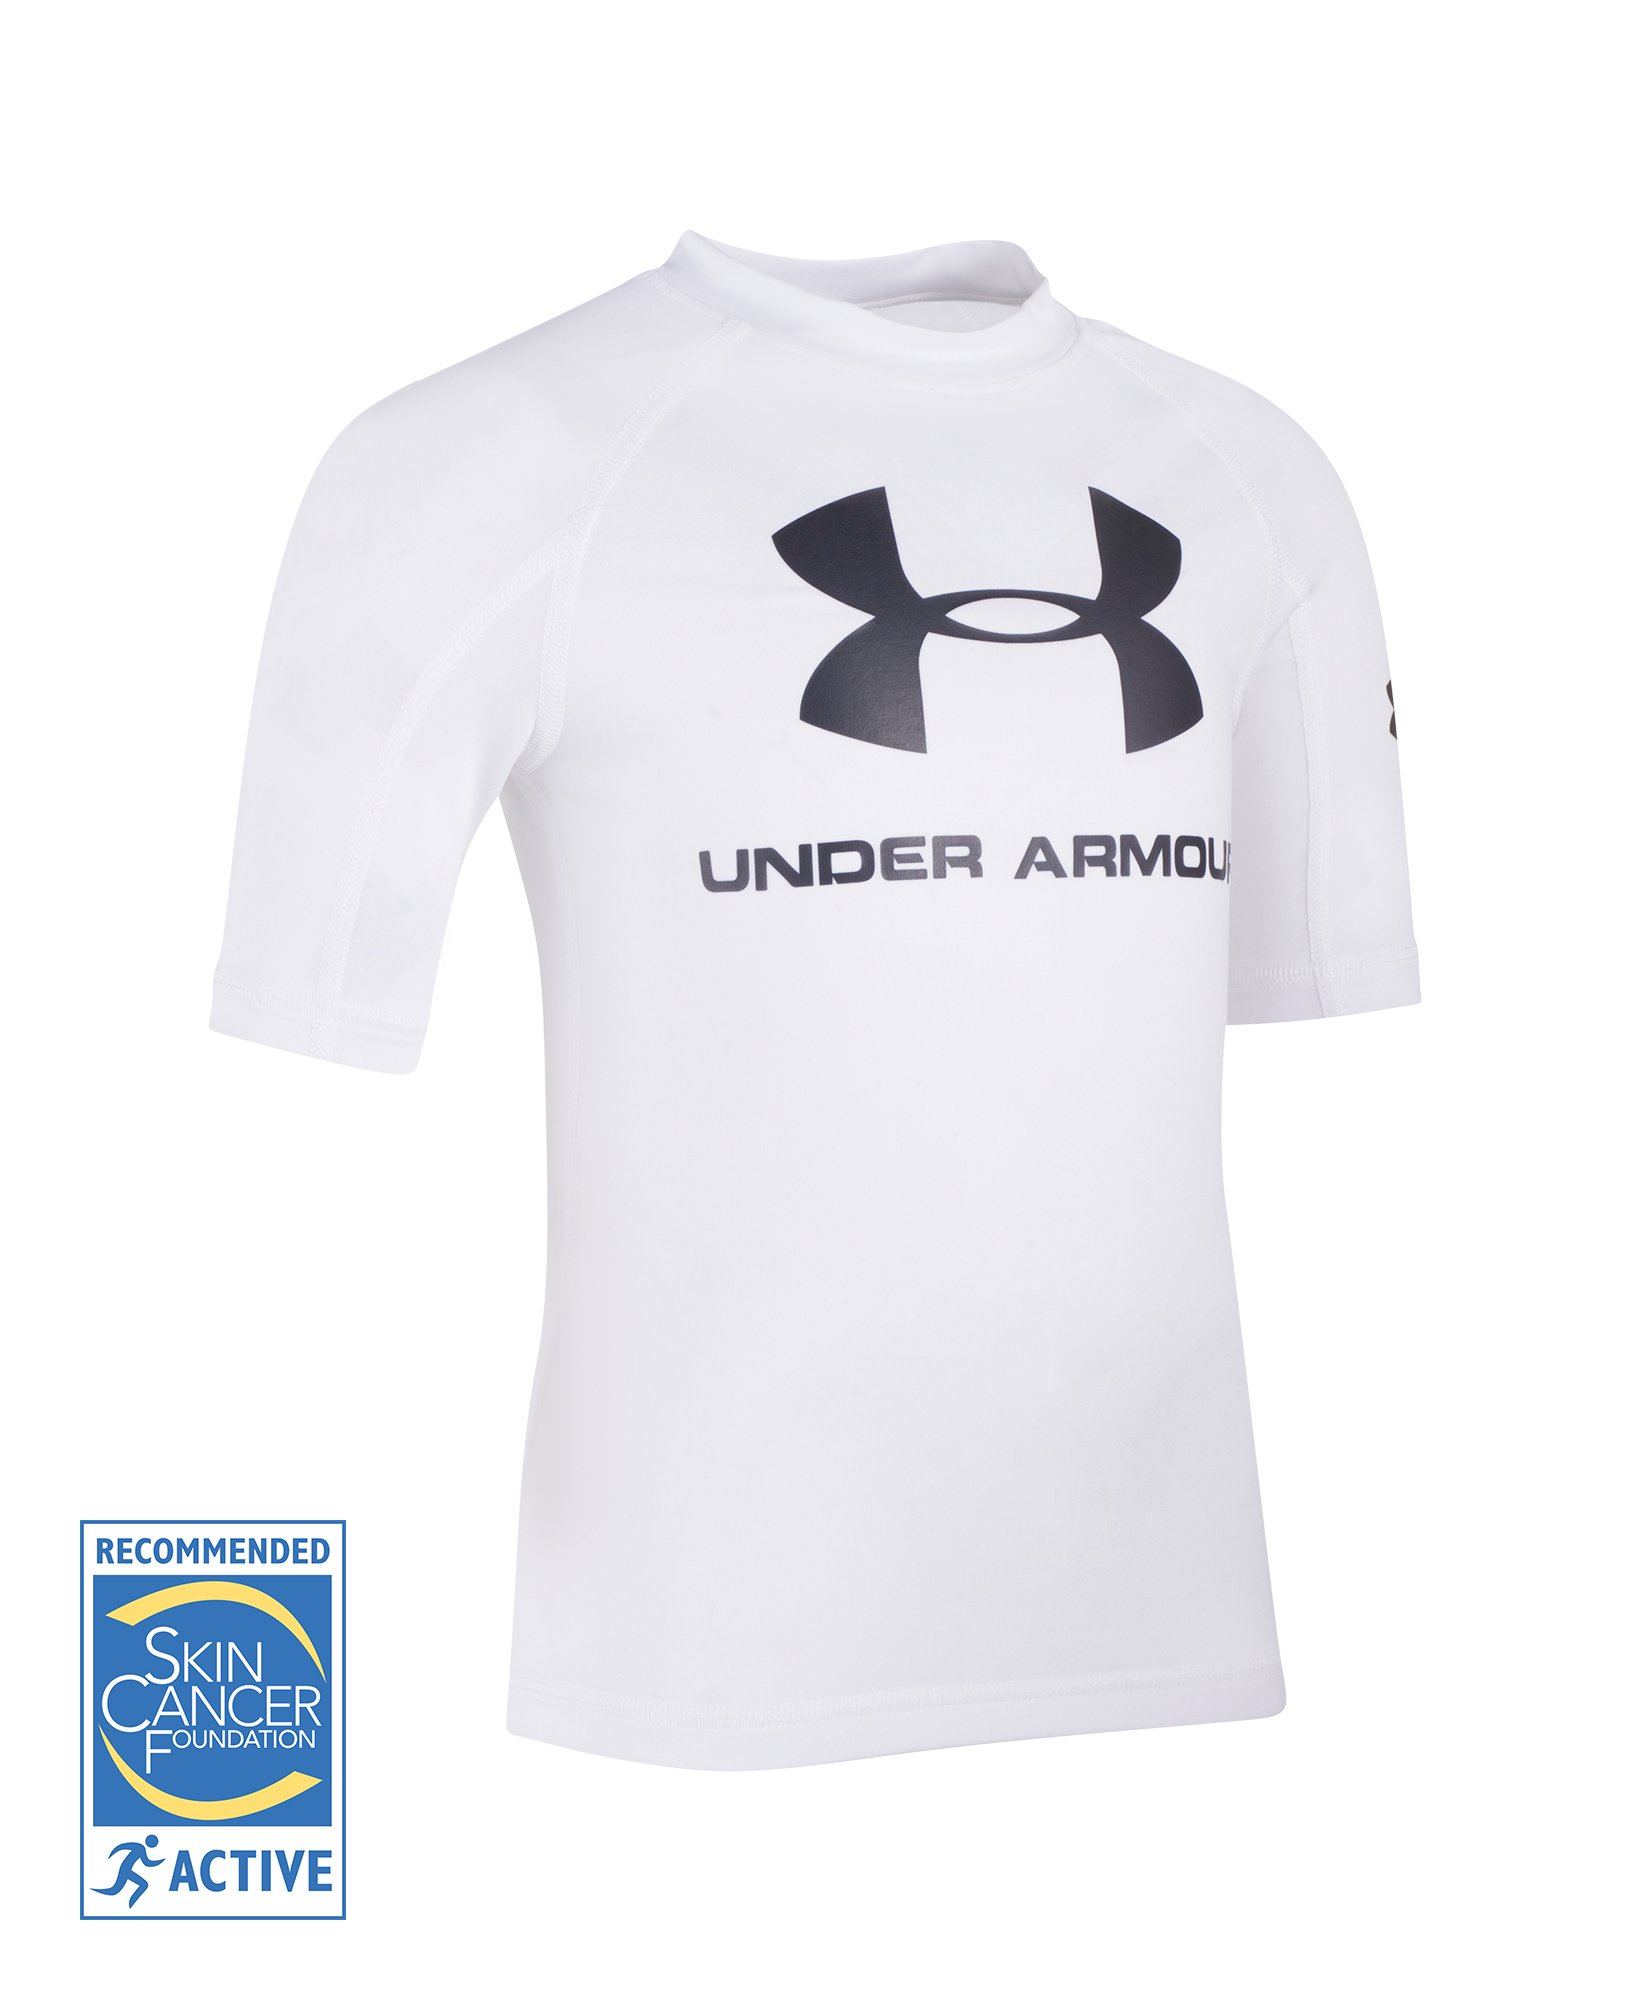 Boys' Pre-School UA Compression Rashguard Short Sleeve Shirt, White, undefined